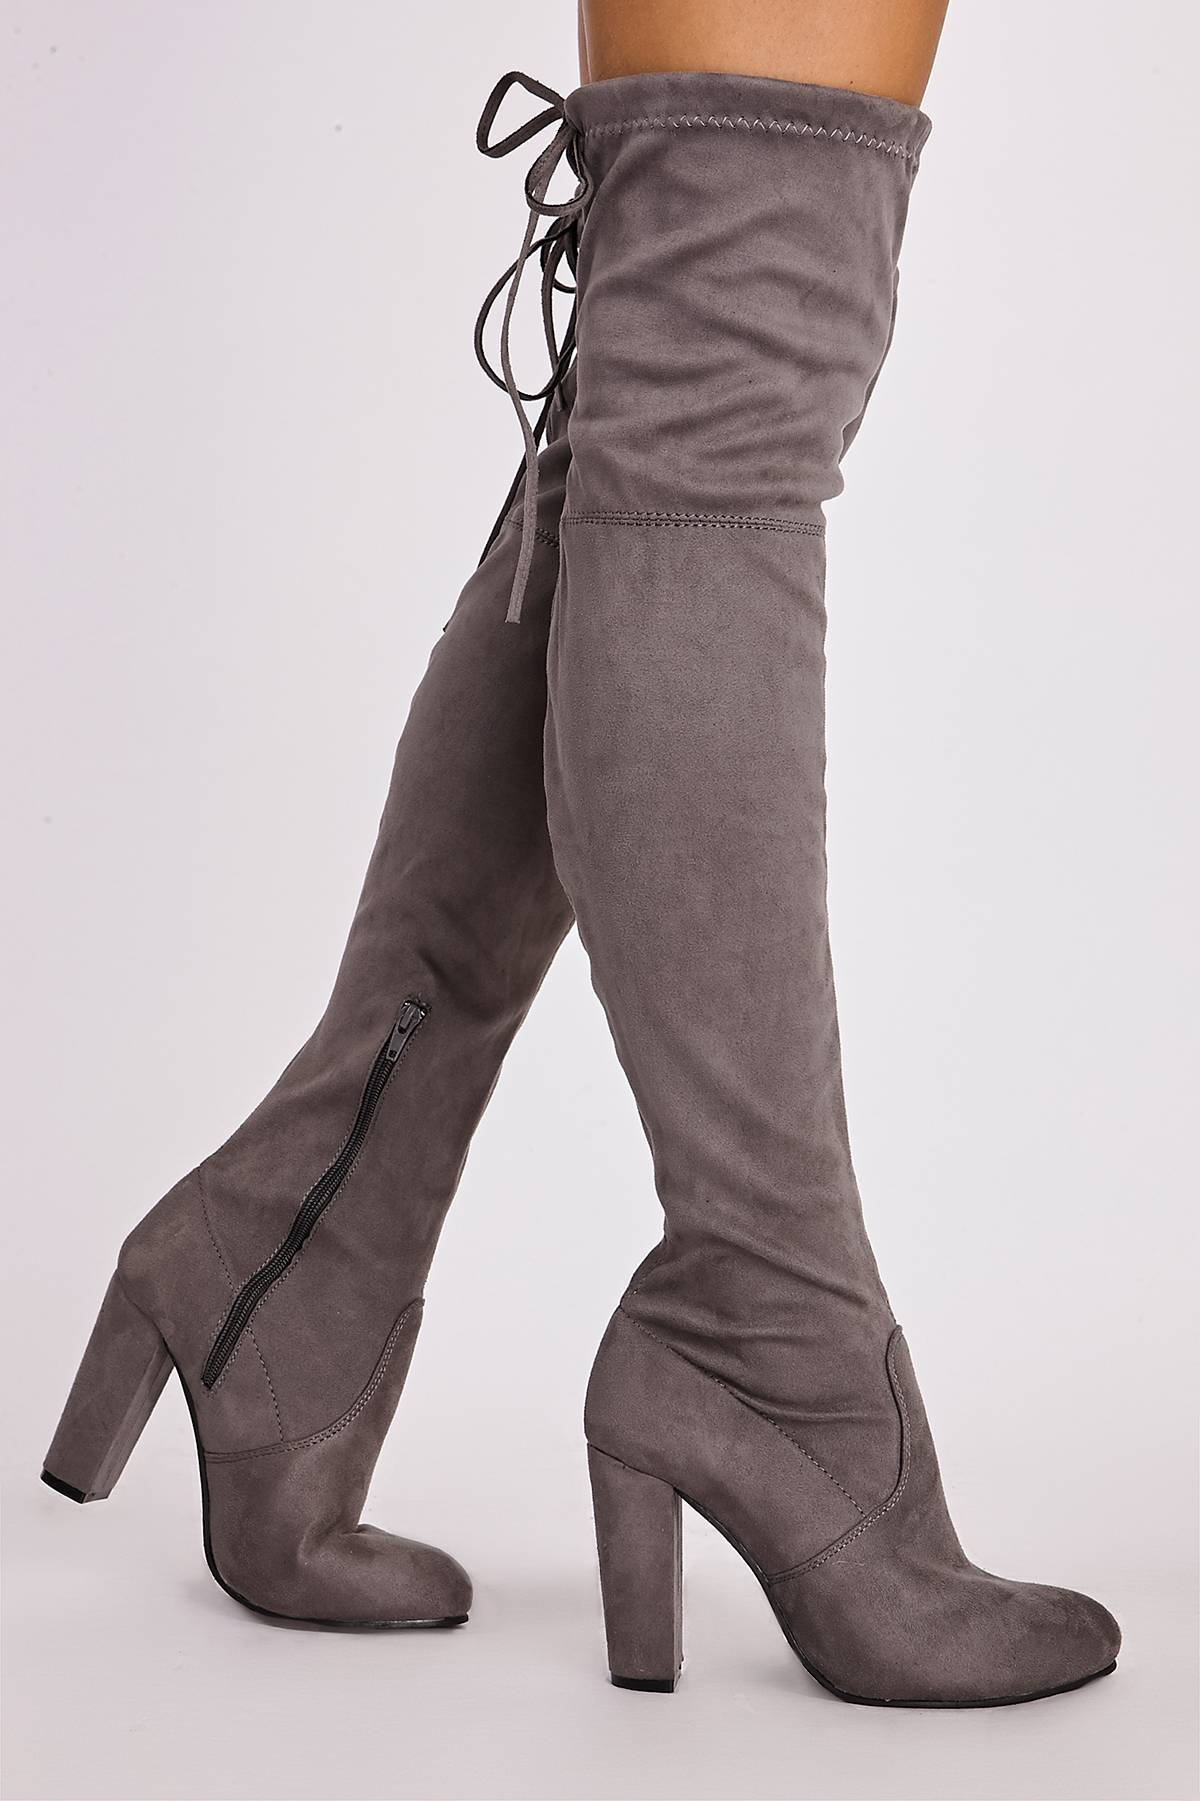 Remi Grey Faux Suede Over The Knee Heeled Boots In The Style